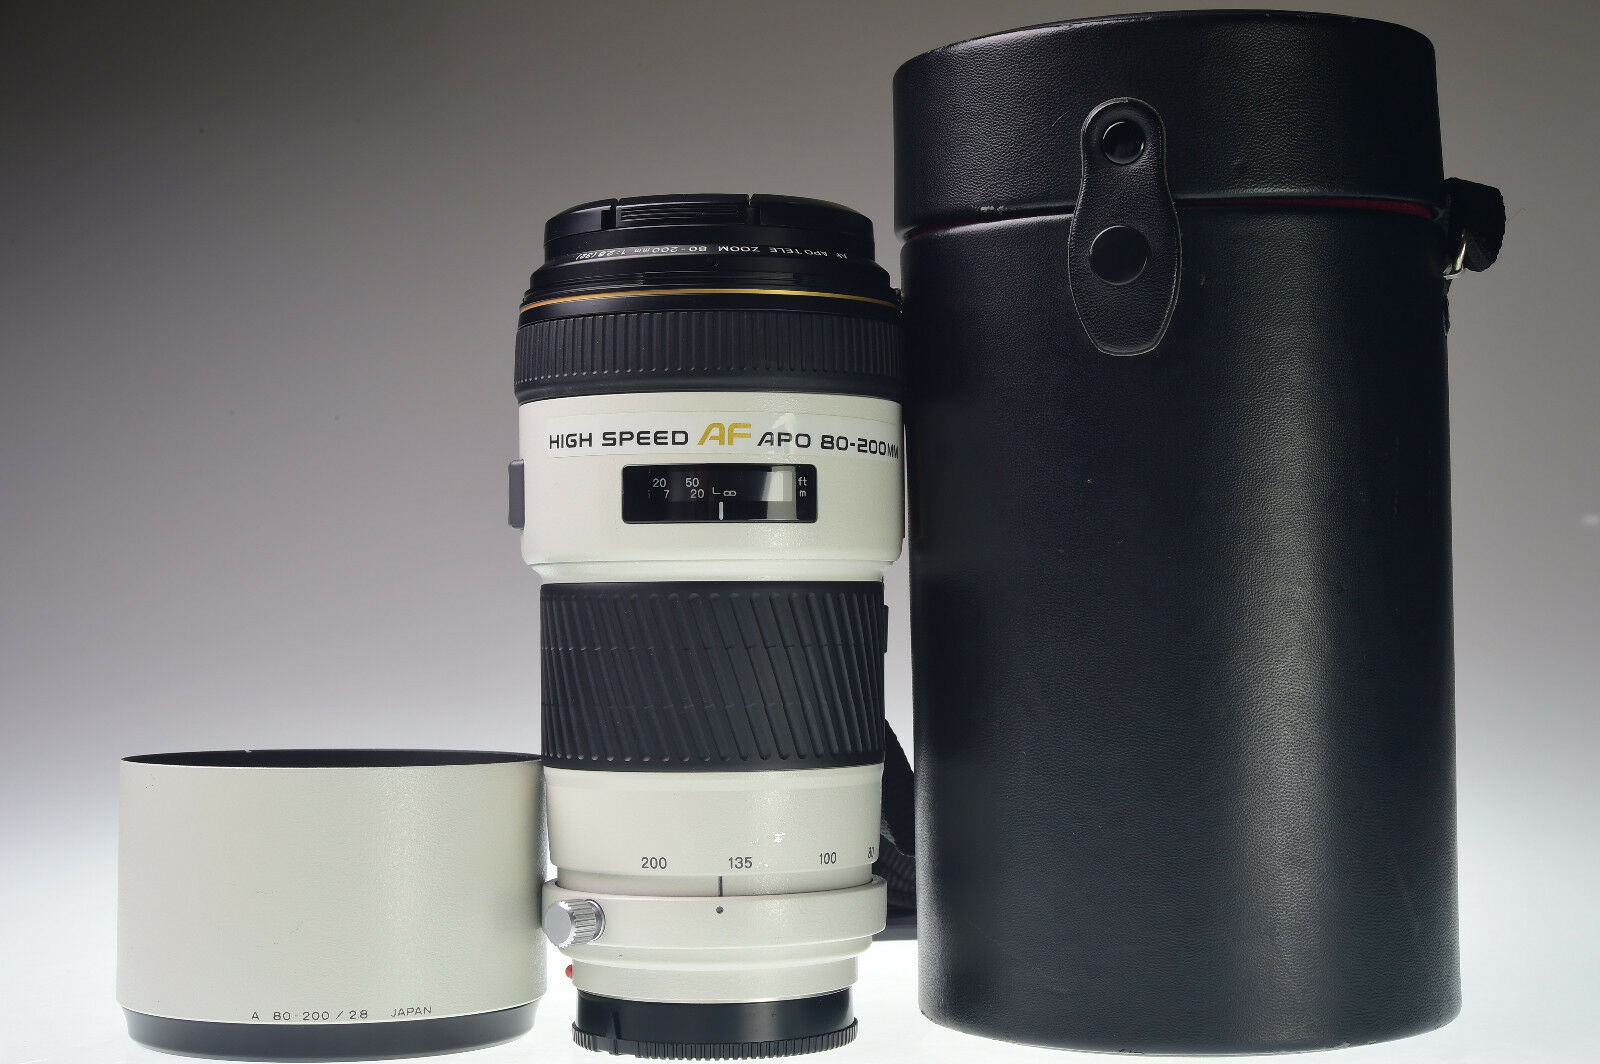 MINOLTA HIGH SPEED AF APO TELE 80-200mm f/2.8G for Sony Alpha Excellent